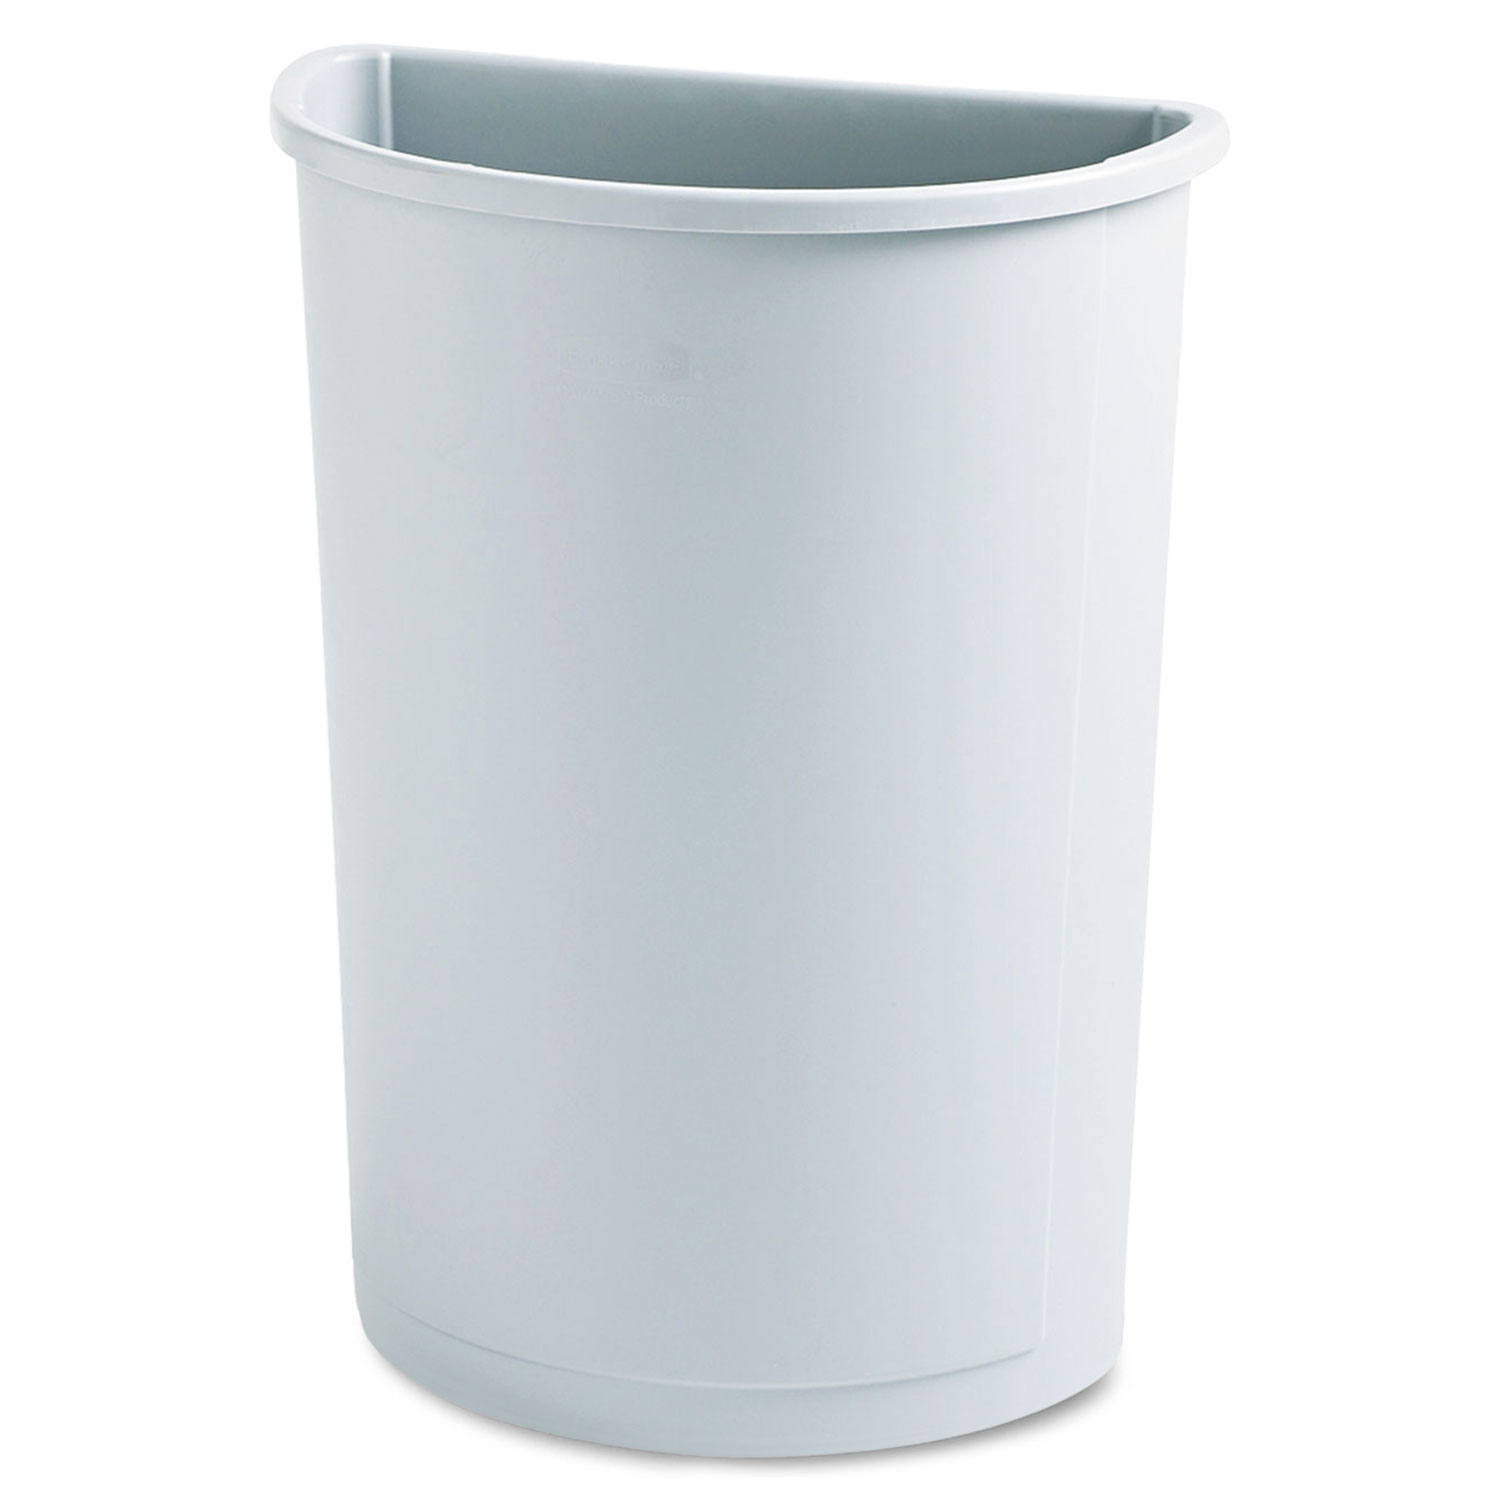 Elegant Trash Can Untouchable Waste Container Half Round Plastic 21gal Gray